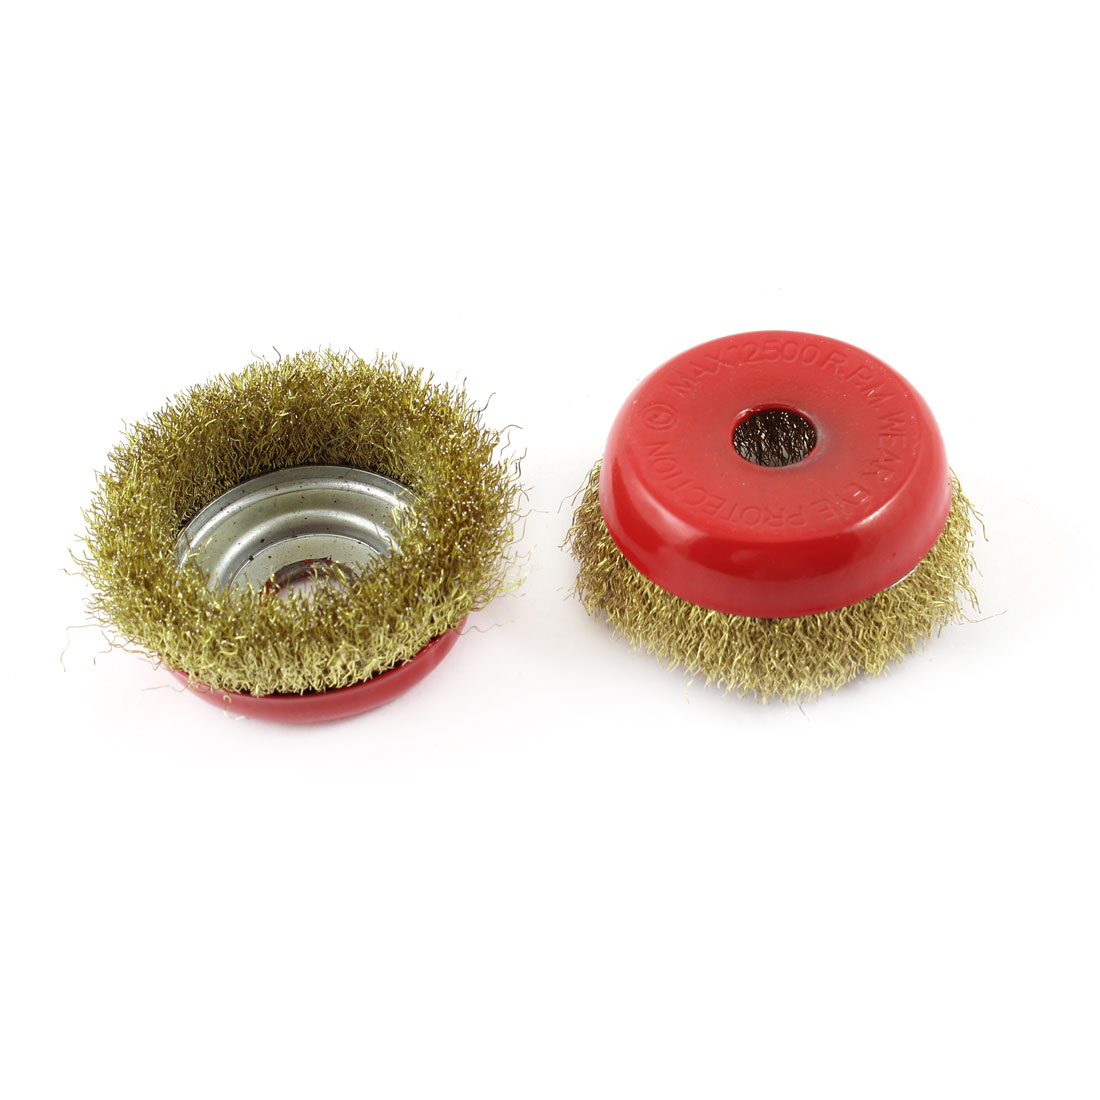 "3.3"" Diameter Steel Wire Polishing Brushes Red Gold Tone 2 Pcs"